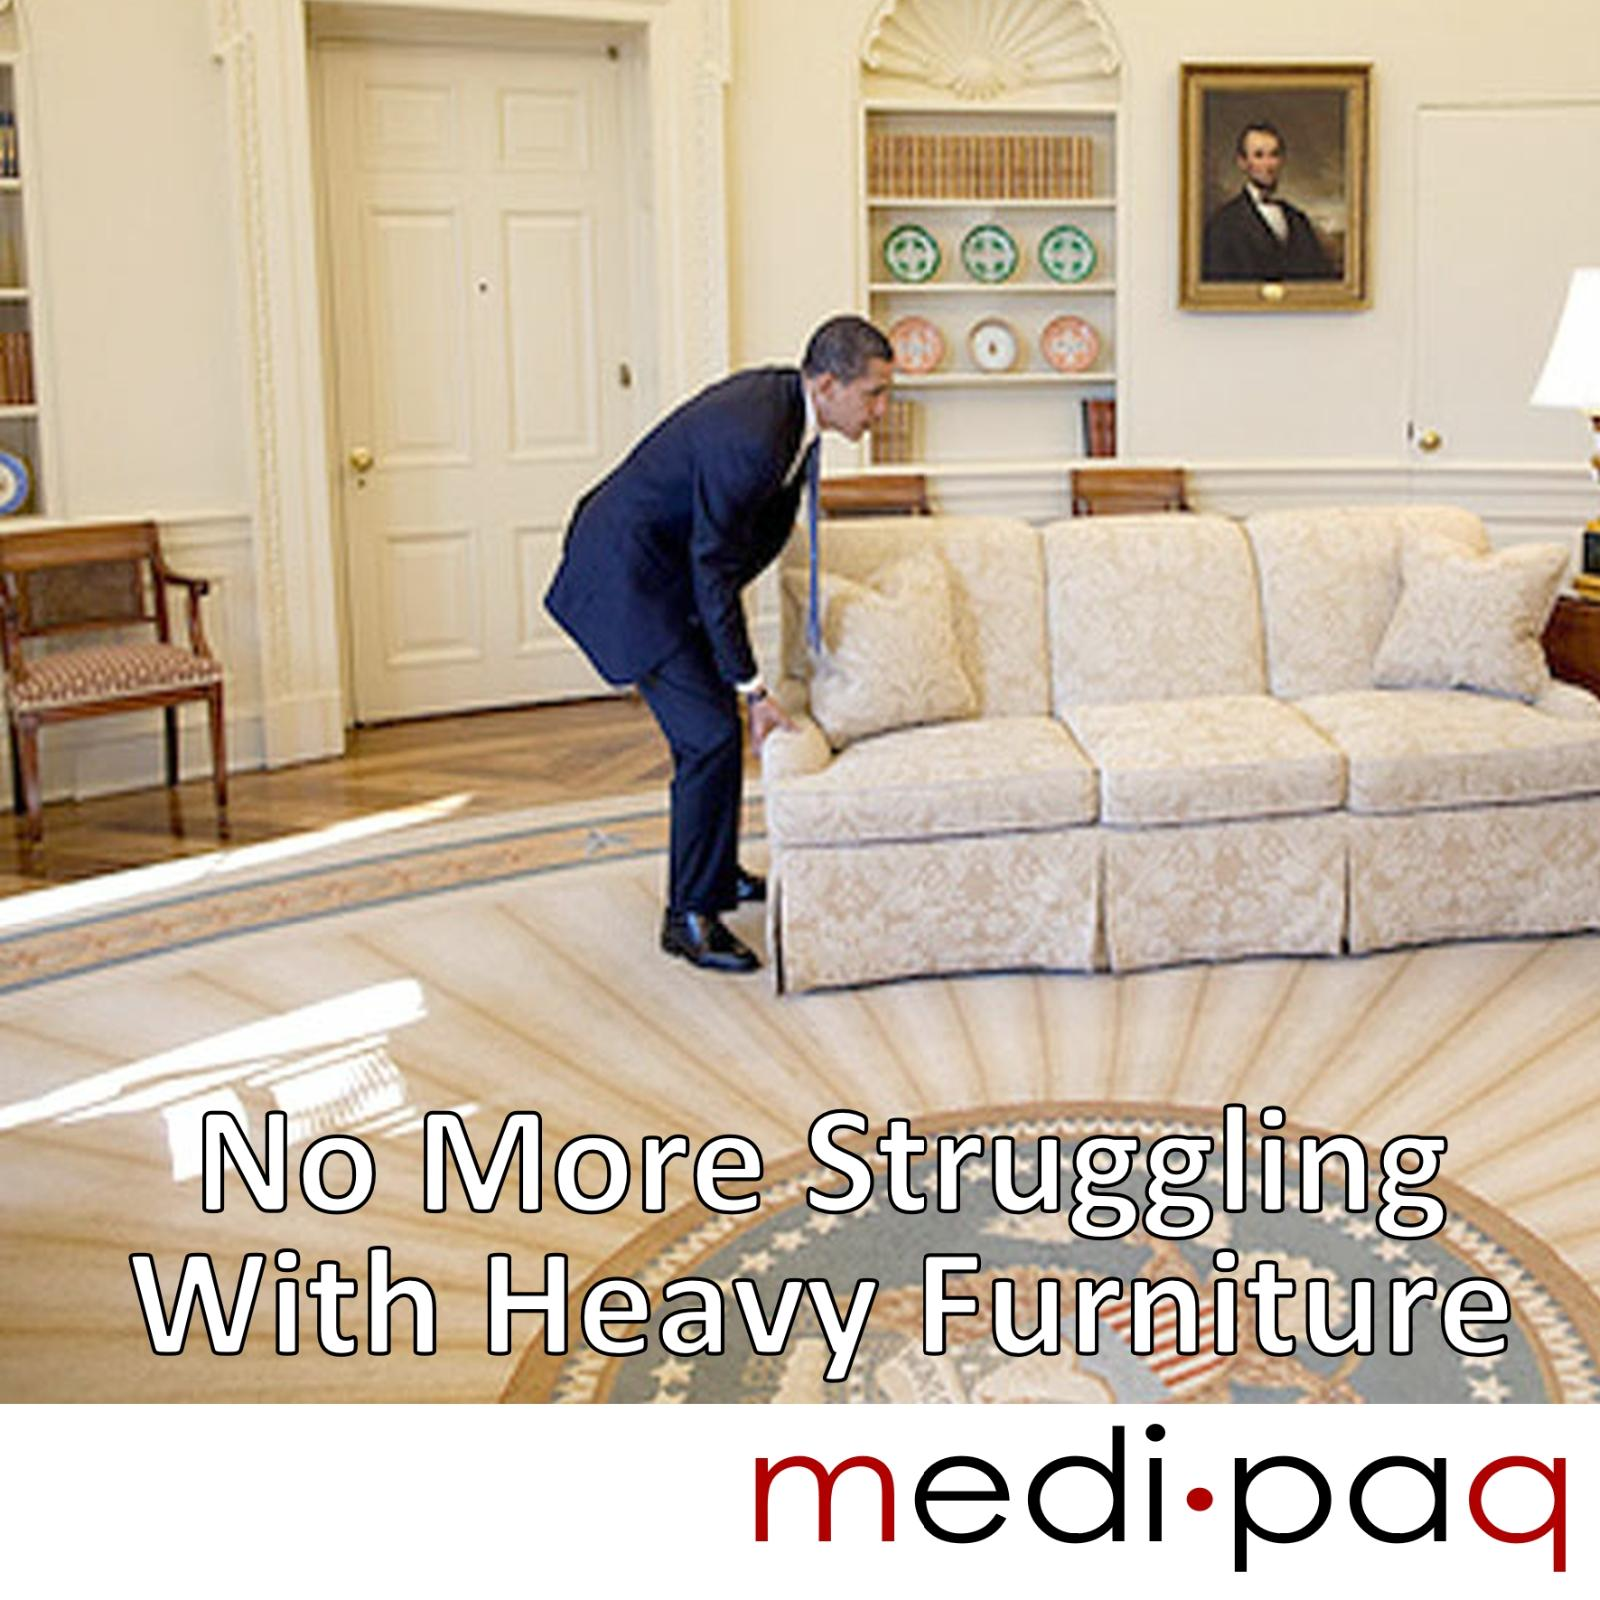 Easy furniture sliders gliders move heavy furniture moving men carpet hard floor ebay - Easy to move furniture ...